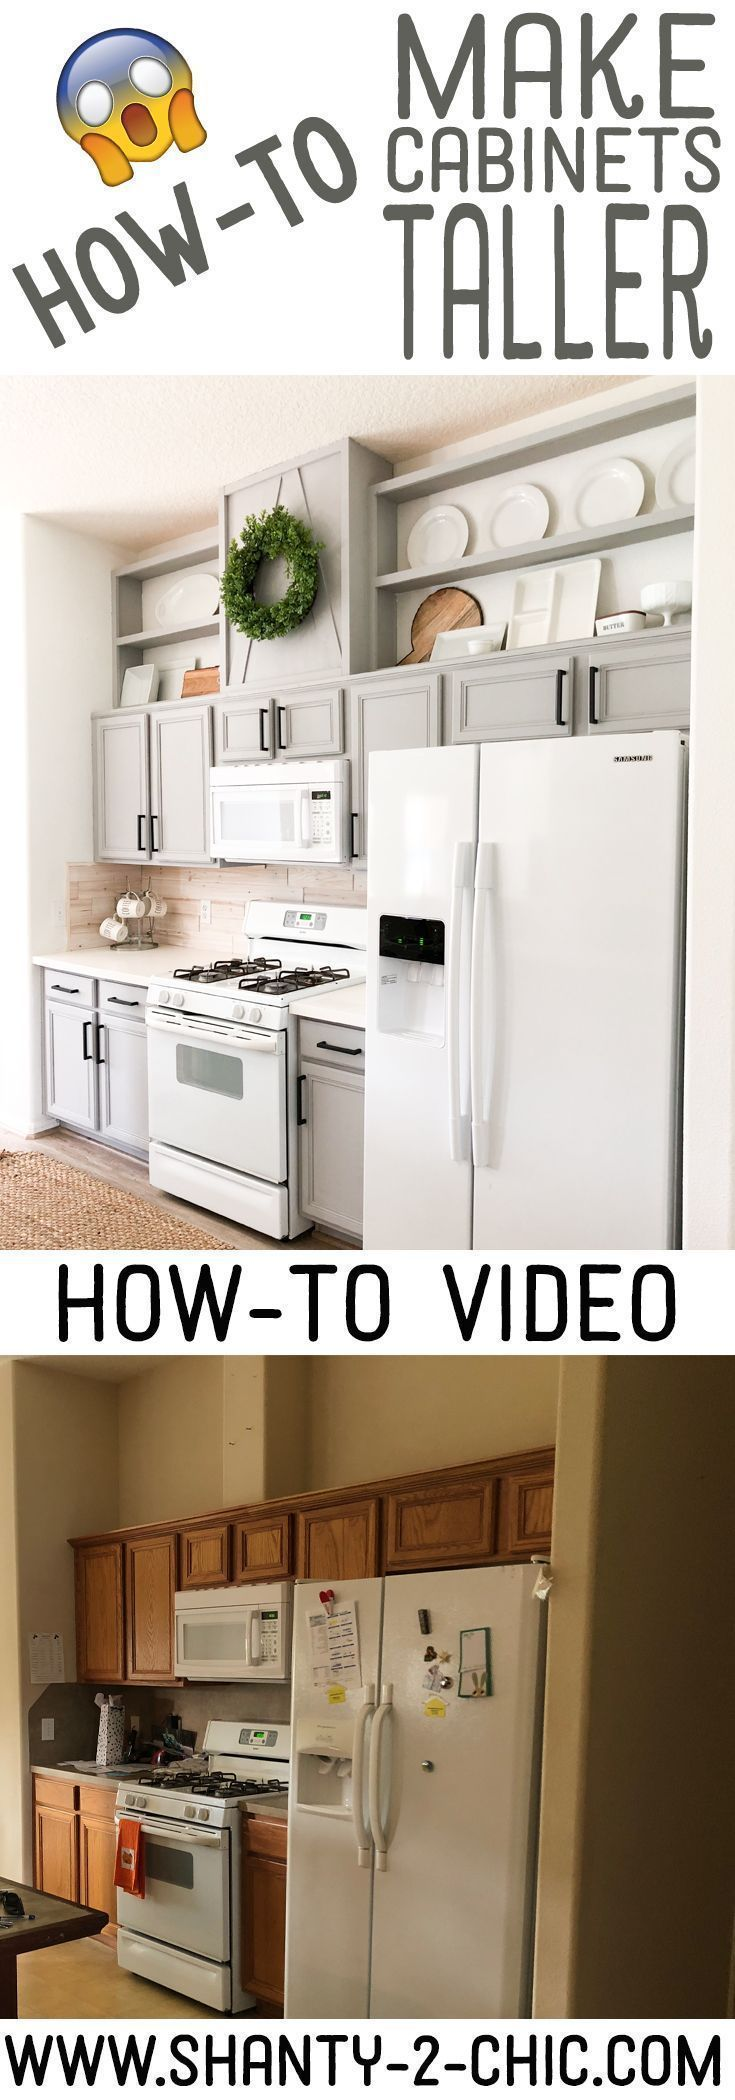 How To Make Cabinets Taller Above Kitchen Cabinets New Kitchen Cabinets Trendy Kitchen